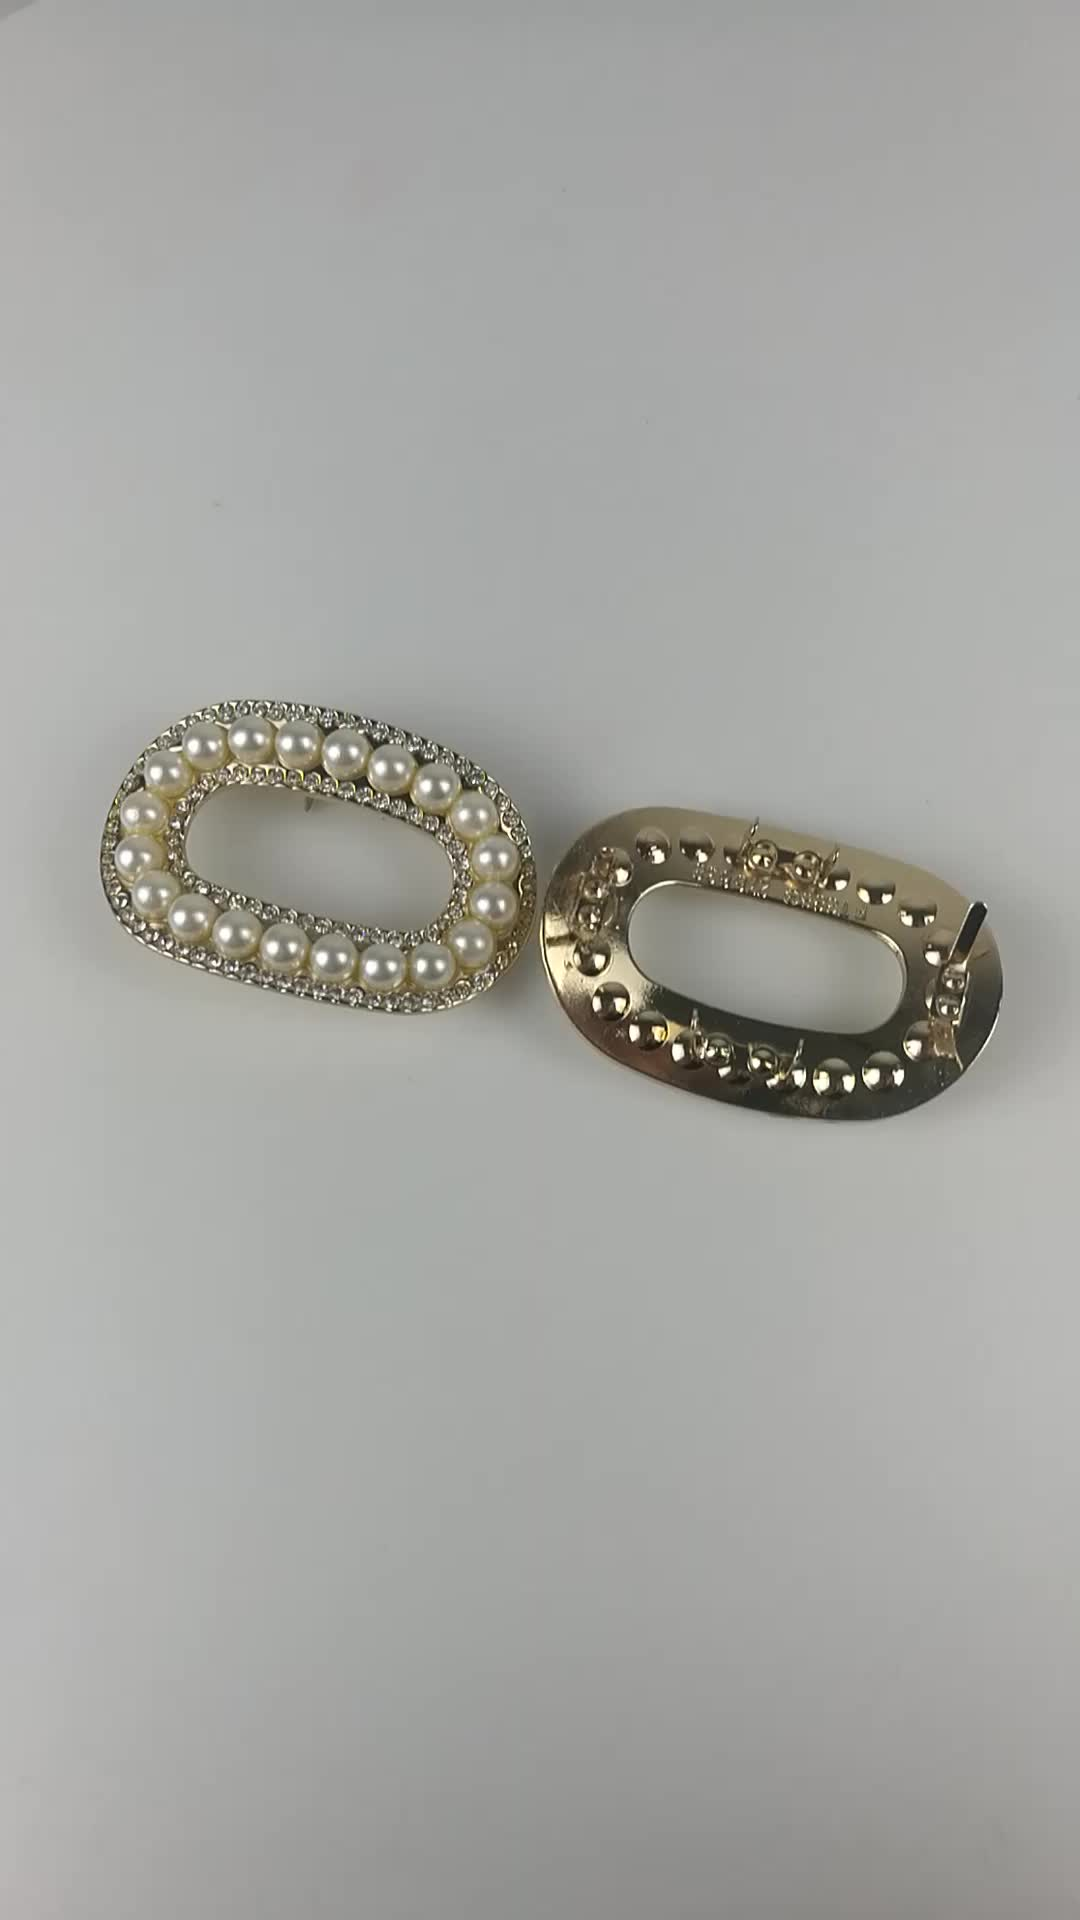 New Arrived Metal Vintage Shoe Buckles With Cheapest Price